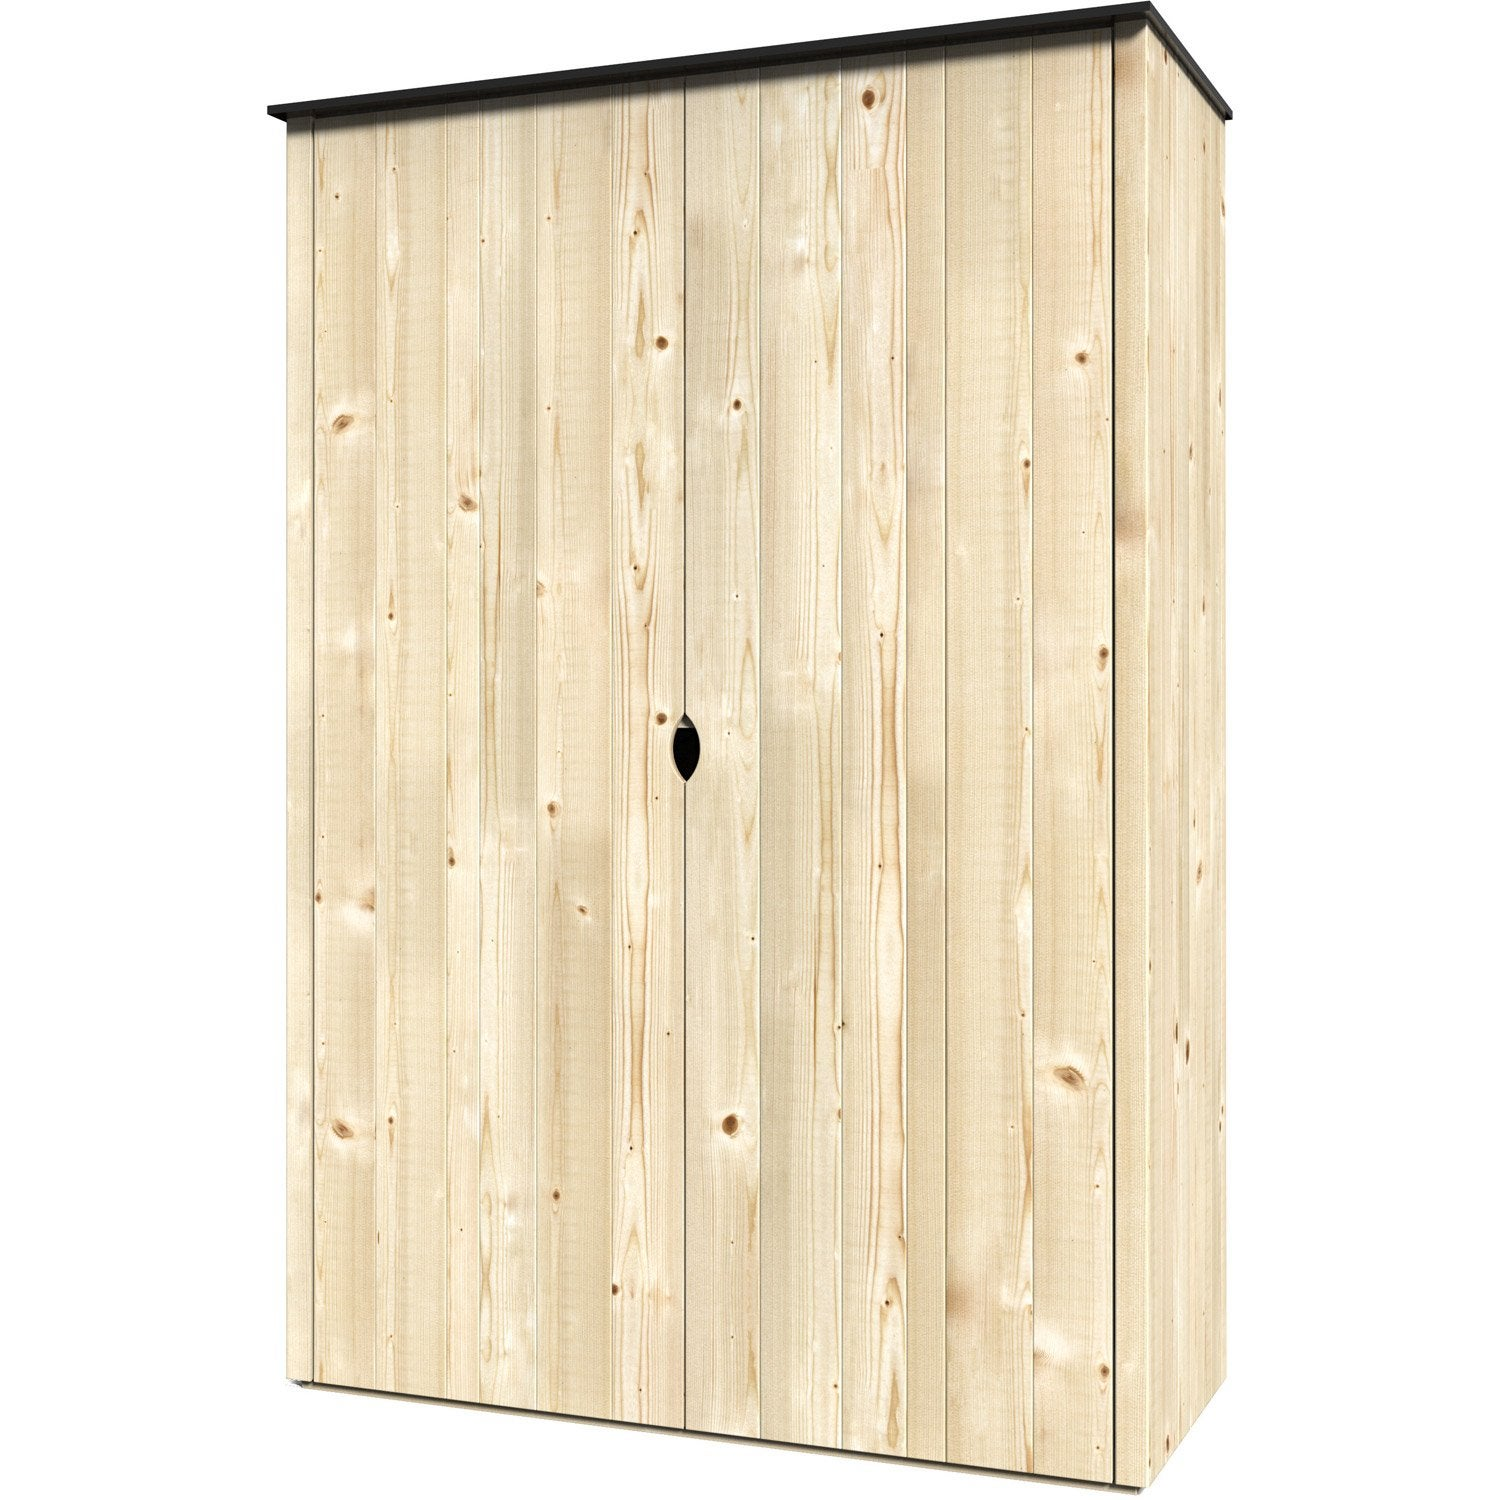 armoire de jardin en bois vertigo 1 2 m leroy merlin. Black Bedroom Furniture Sets. Home Design Ideas